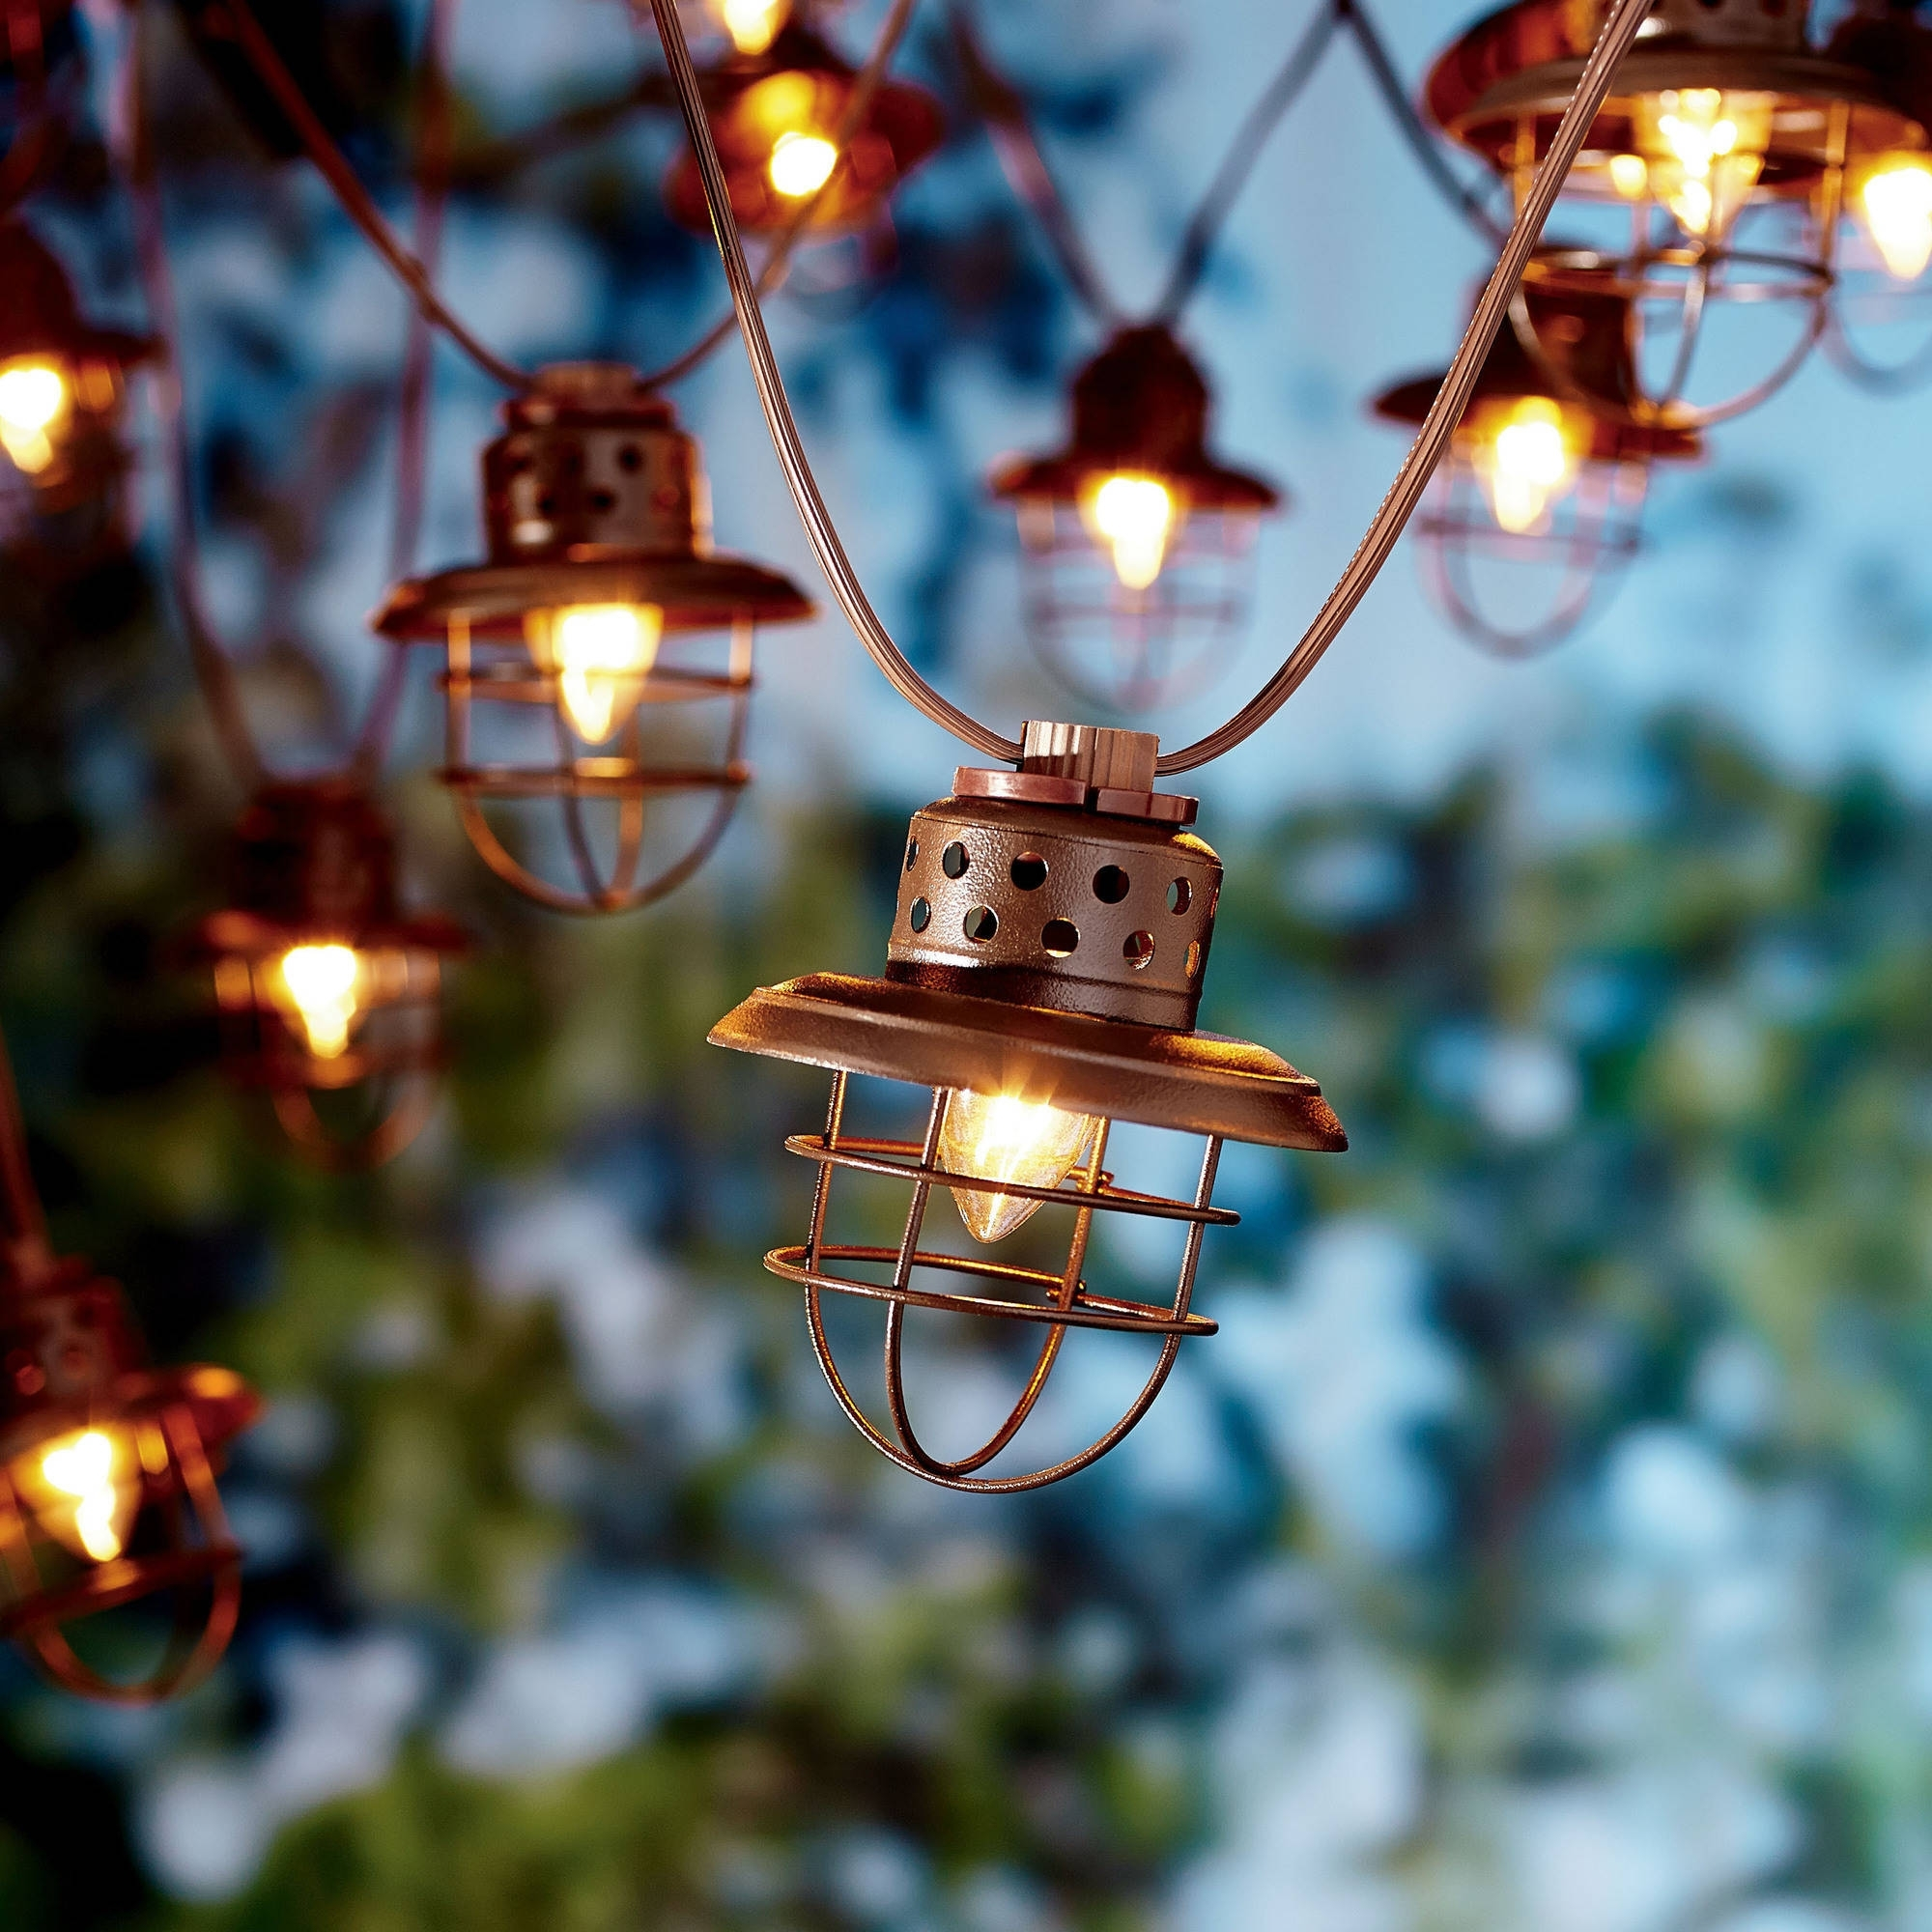 Better Homes And Gardens Outdoor Vintage Cage Lantern String Lights Intended For Favorite Walmart Outdoor Lanterns (View 5 of 20)